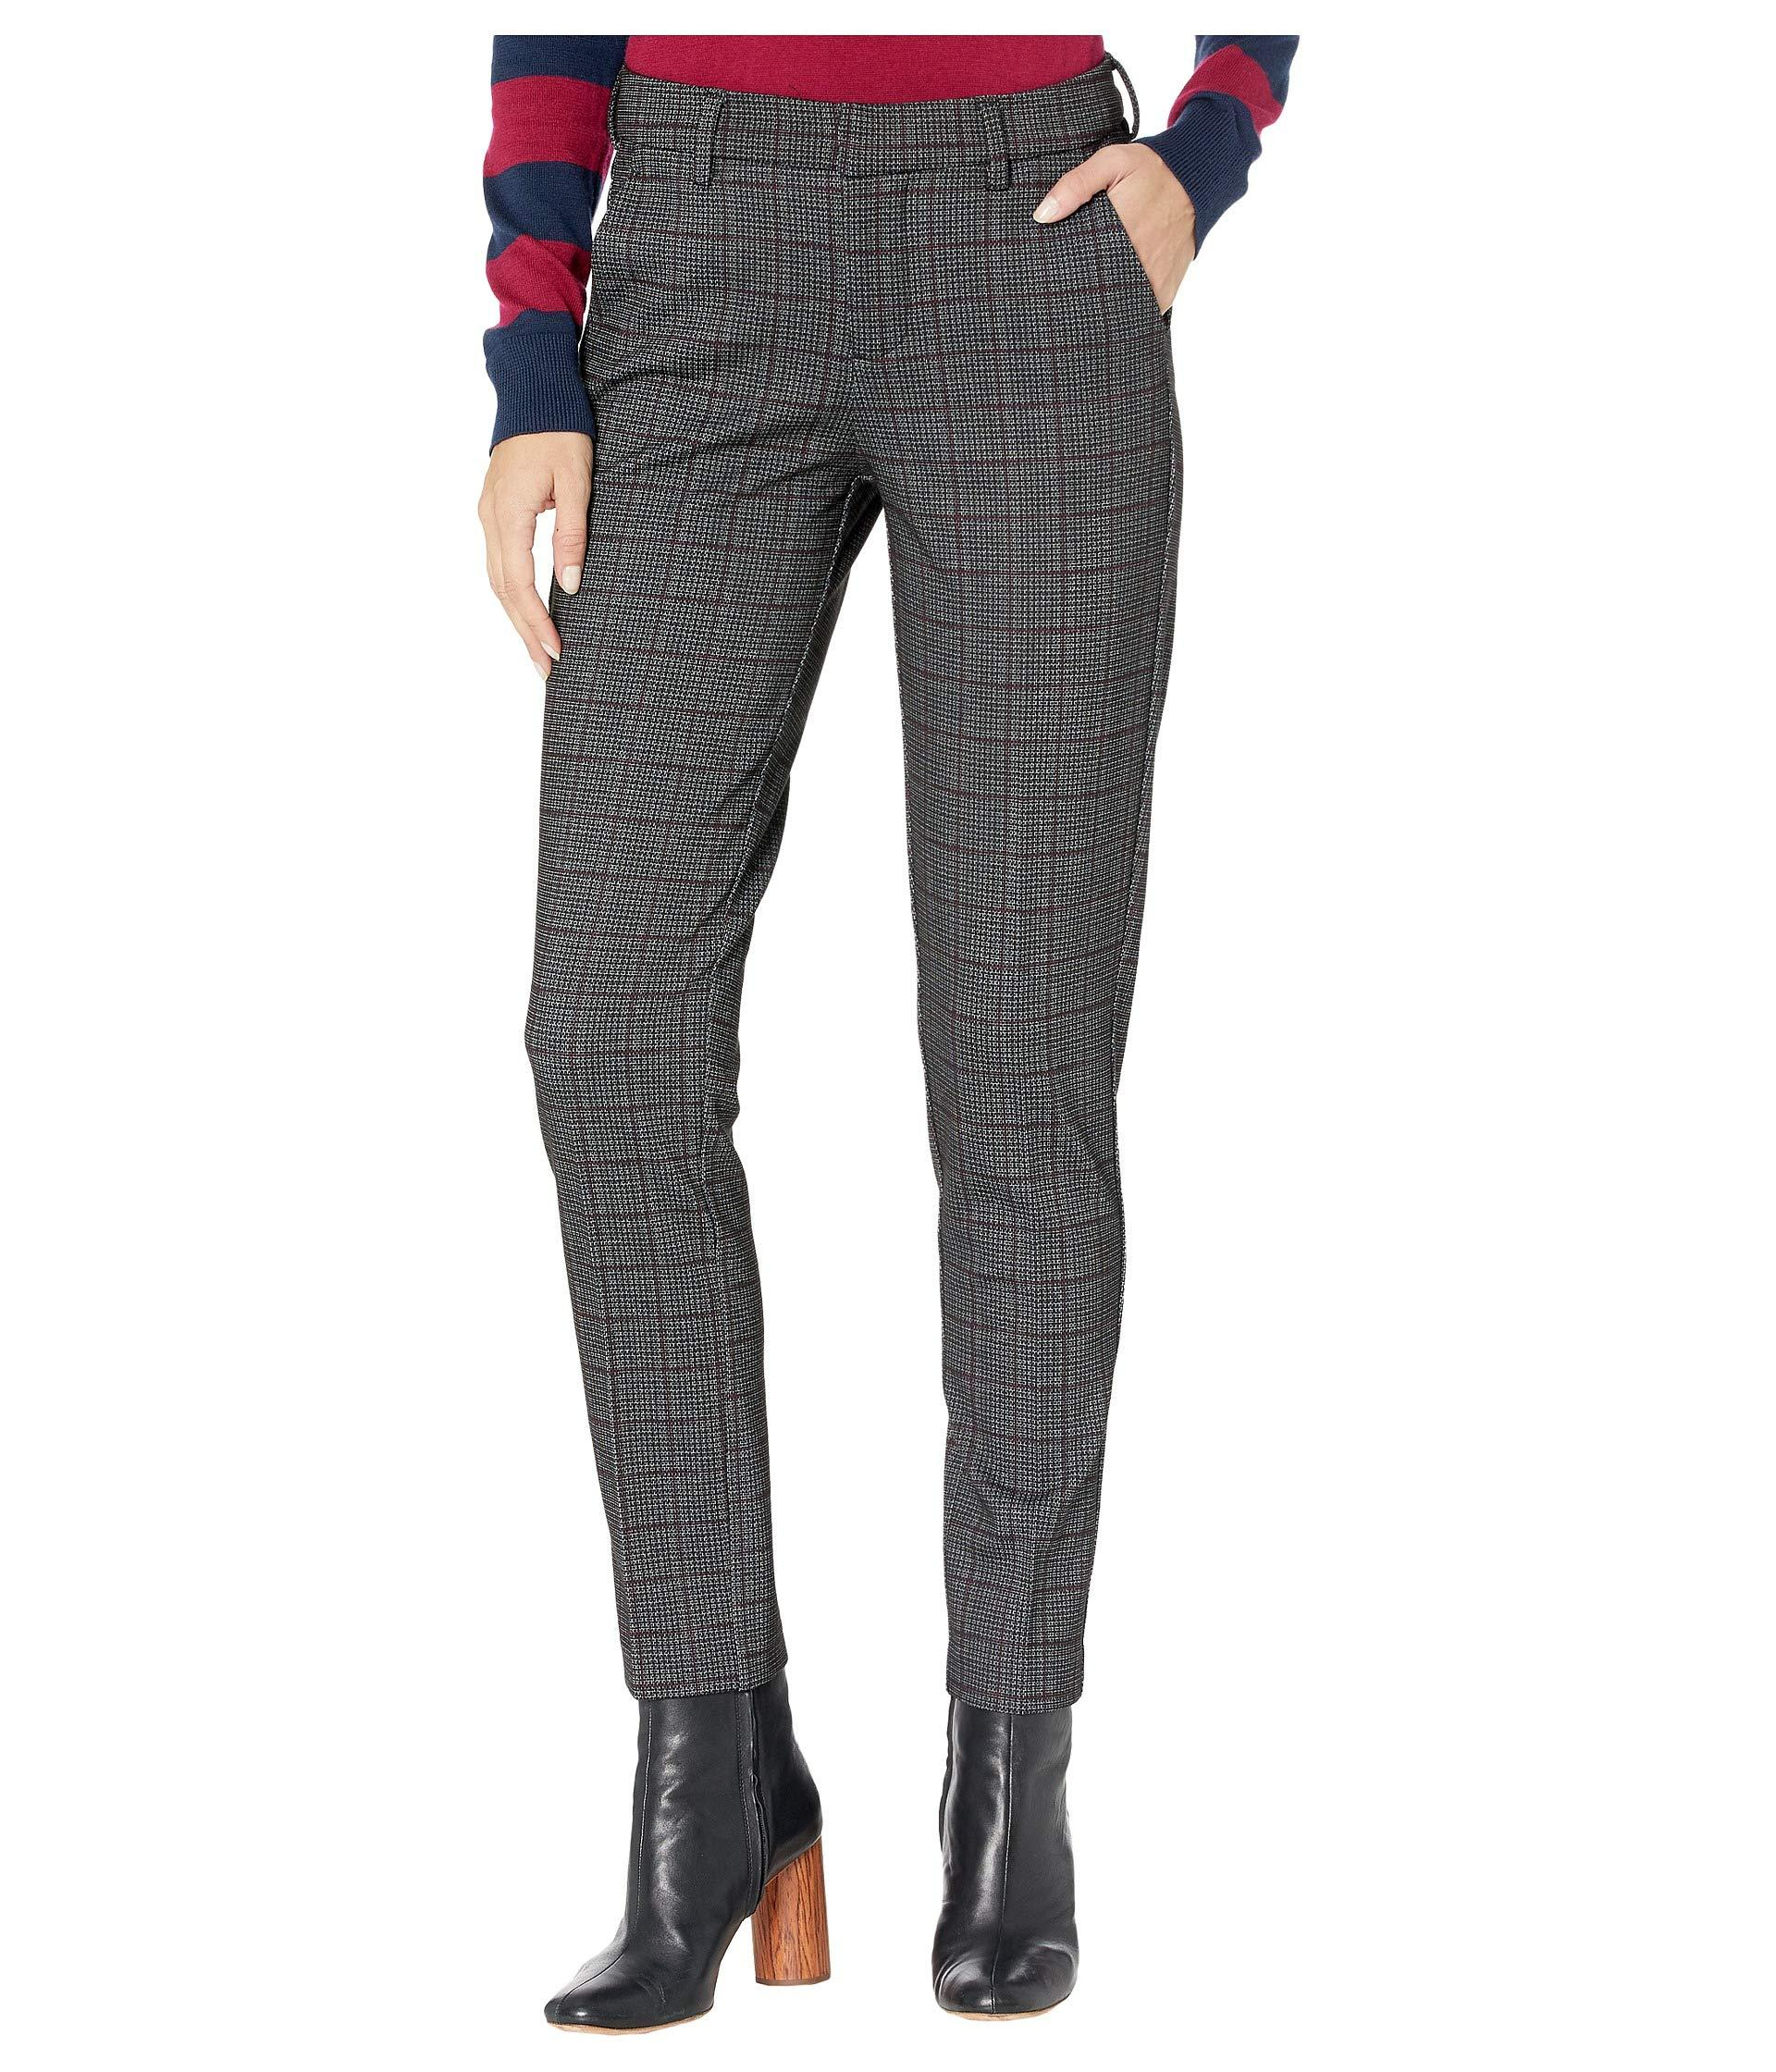 Liverpool Jeans Company Synthetic Kelsey Knit Trousers In Textured Grid Plaid Knit Lyst